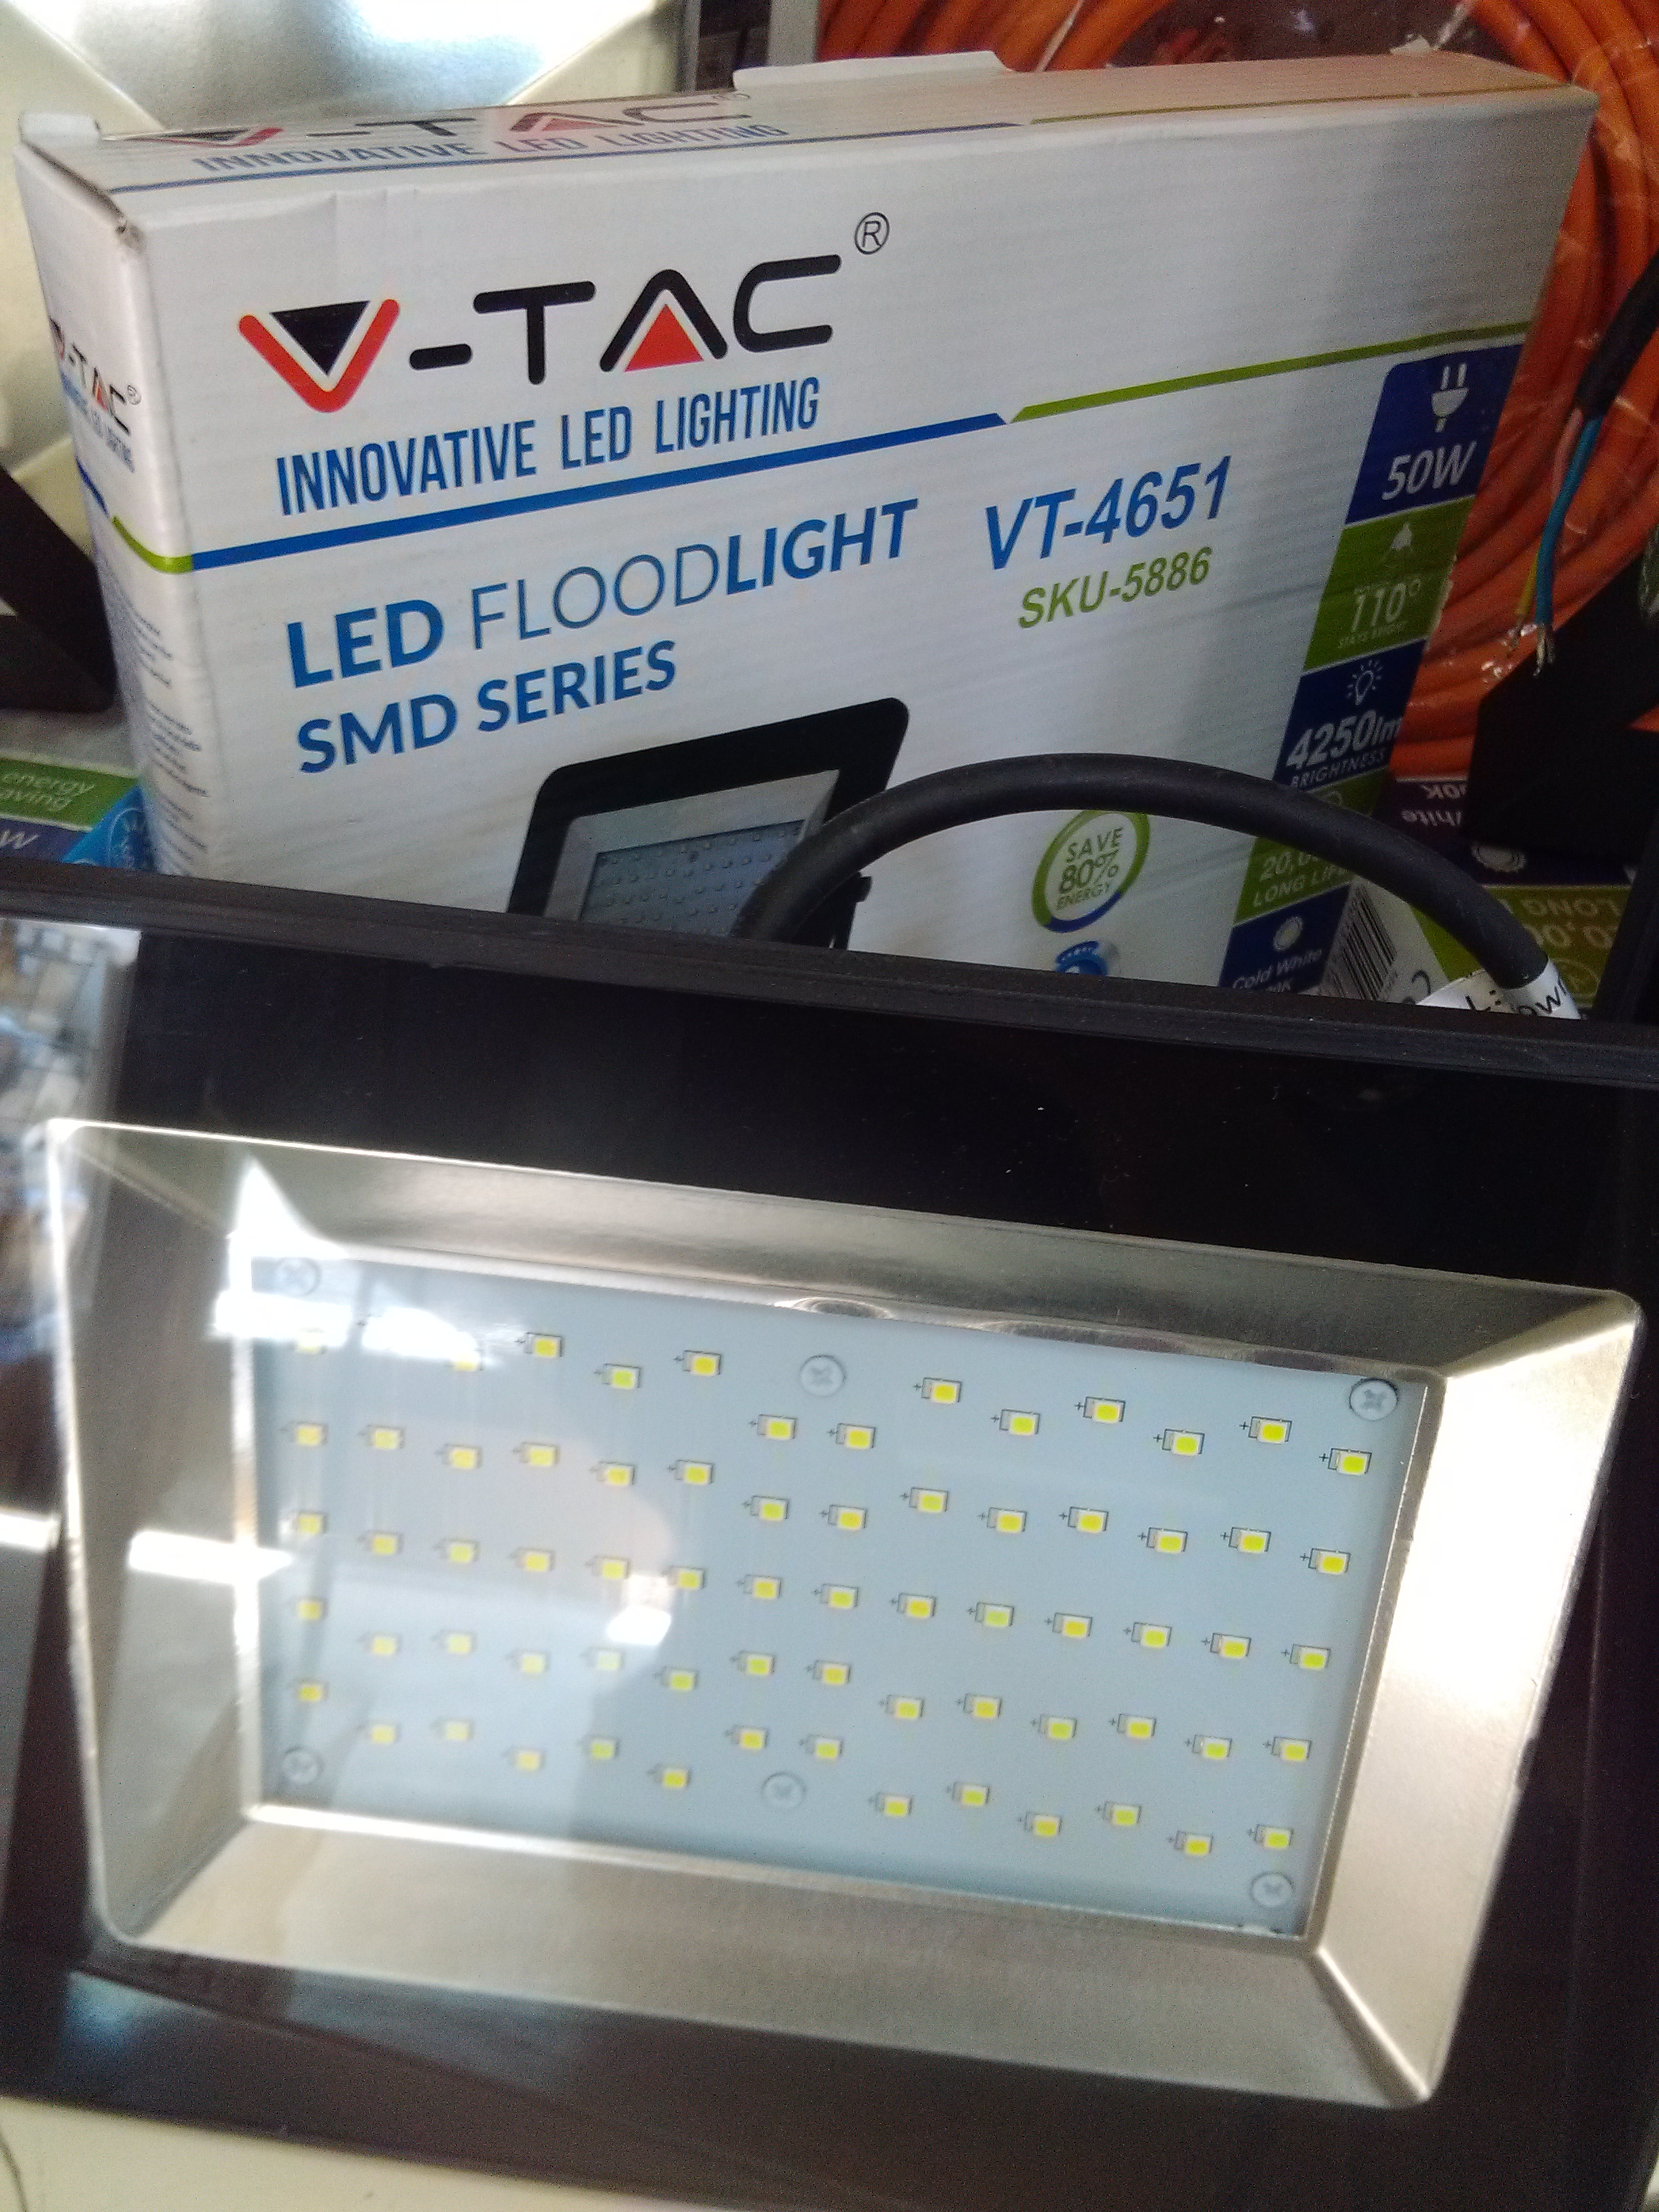 Led reflektor 50W art.2865 V-Tac 5886